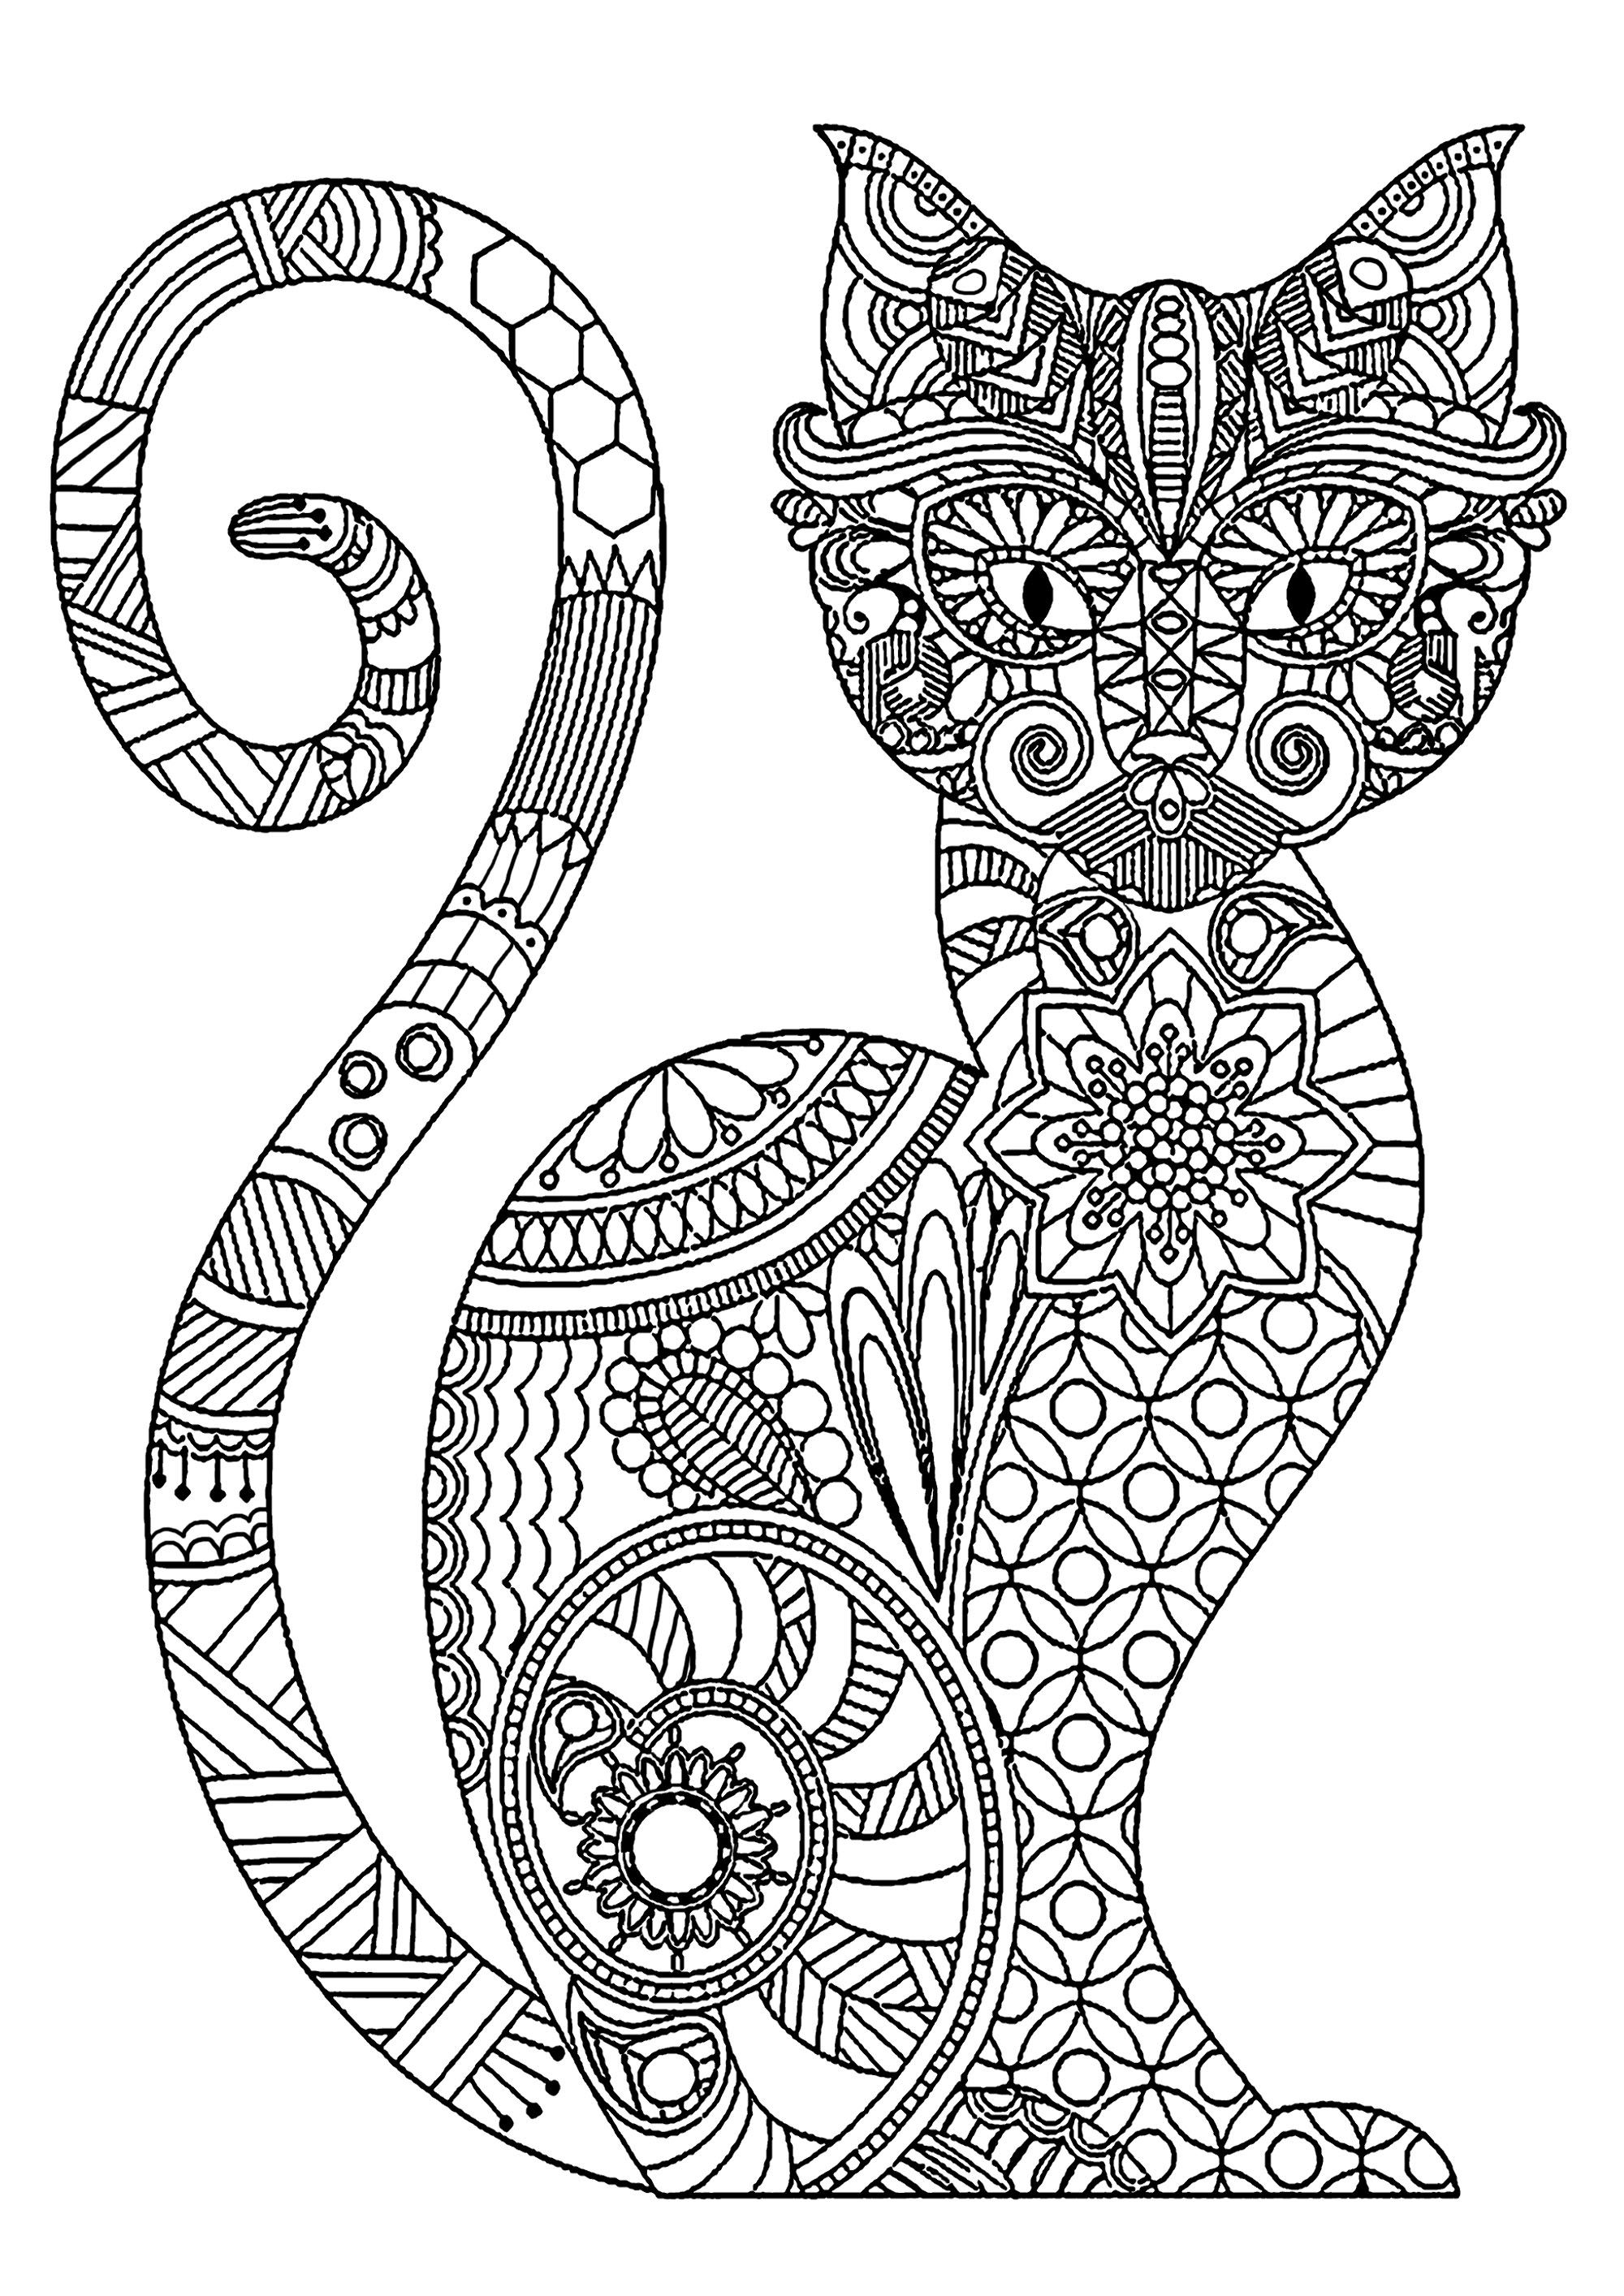 Cat Coloring Pages For Adults Best Coloring Pages For Kids Cat Coloring Book Cat Coloring Page Kitten Coloring Book